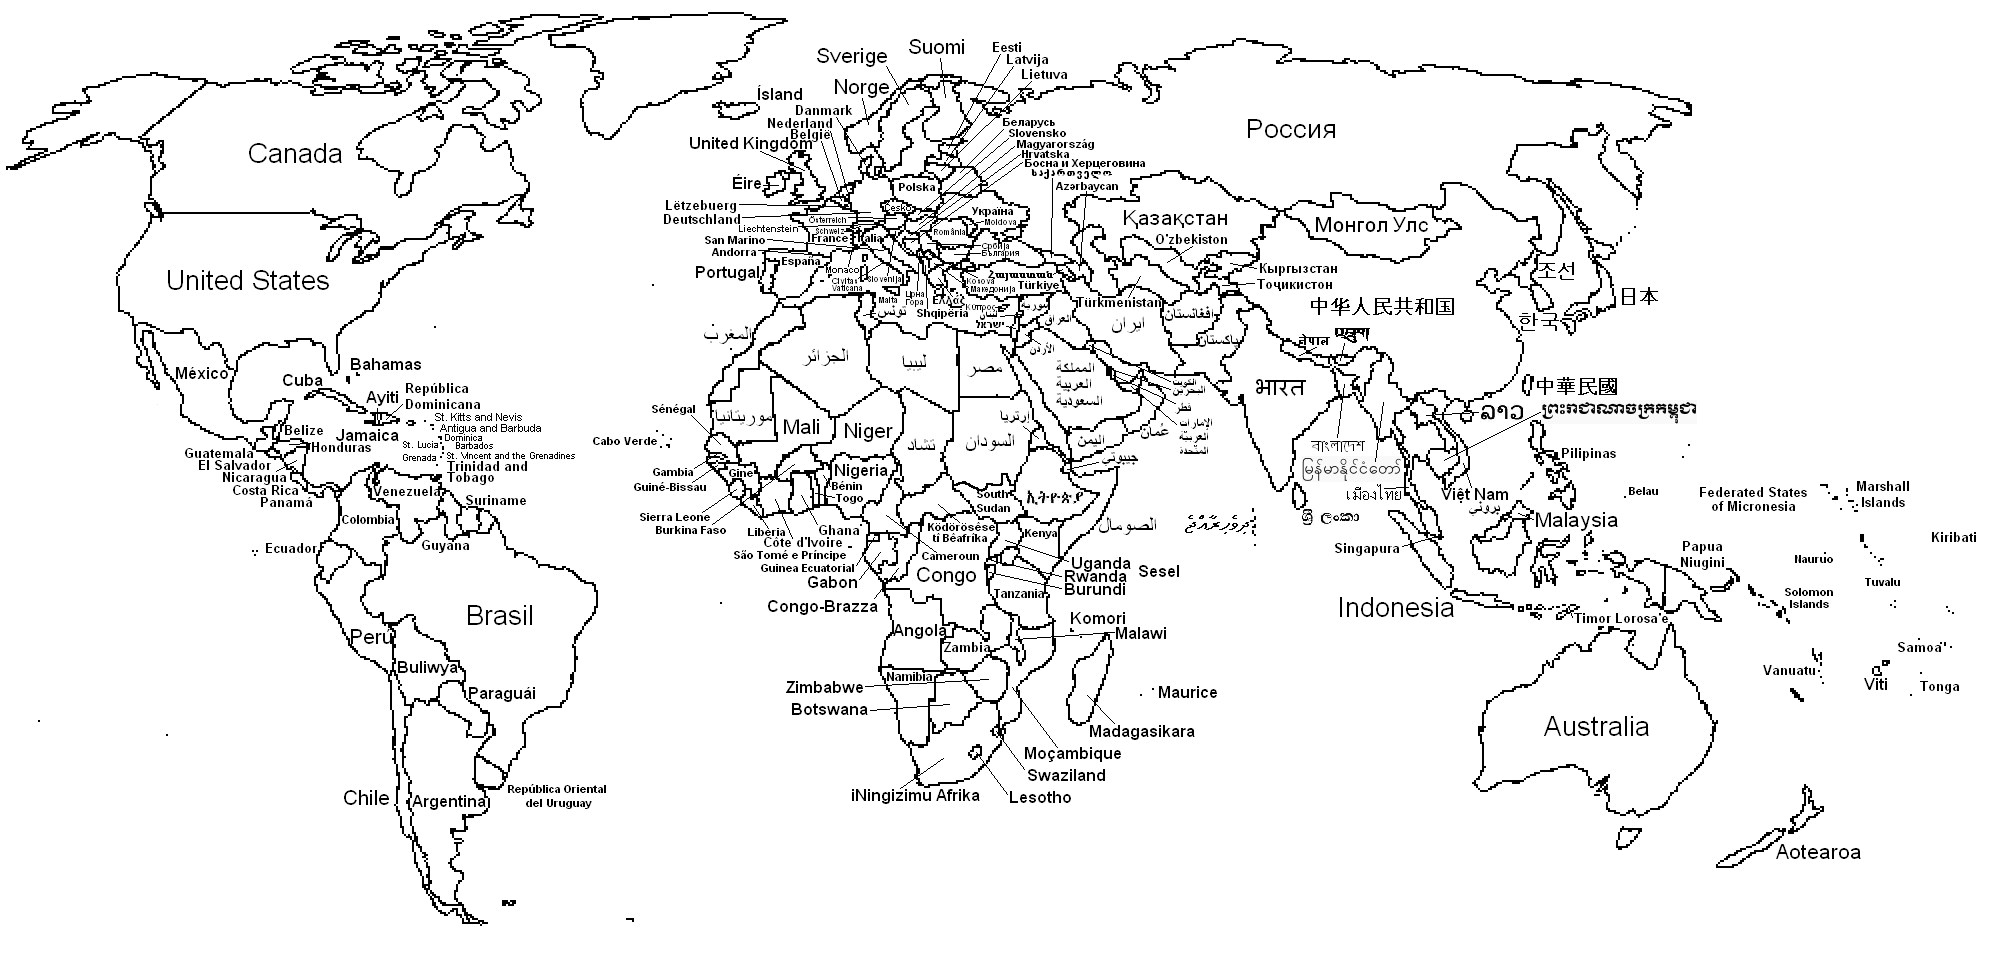 World Map Outline With Countries Labeled